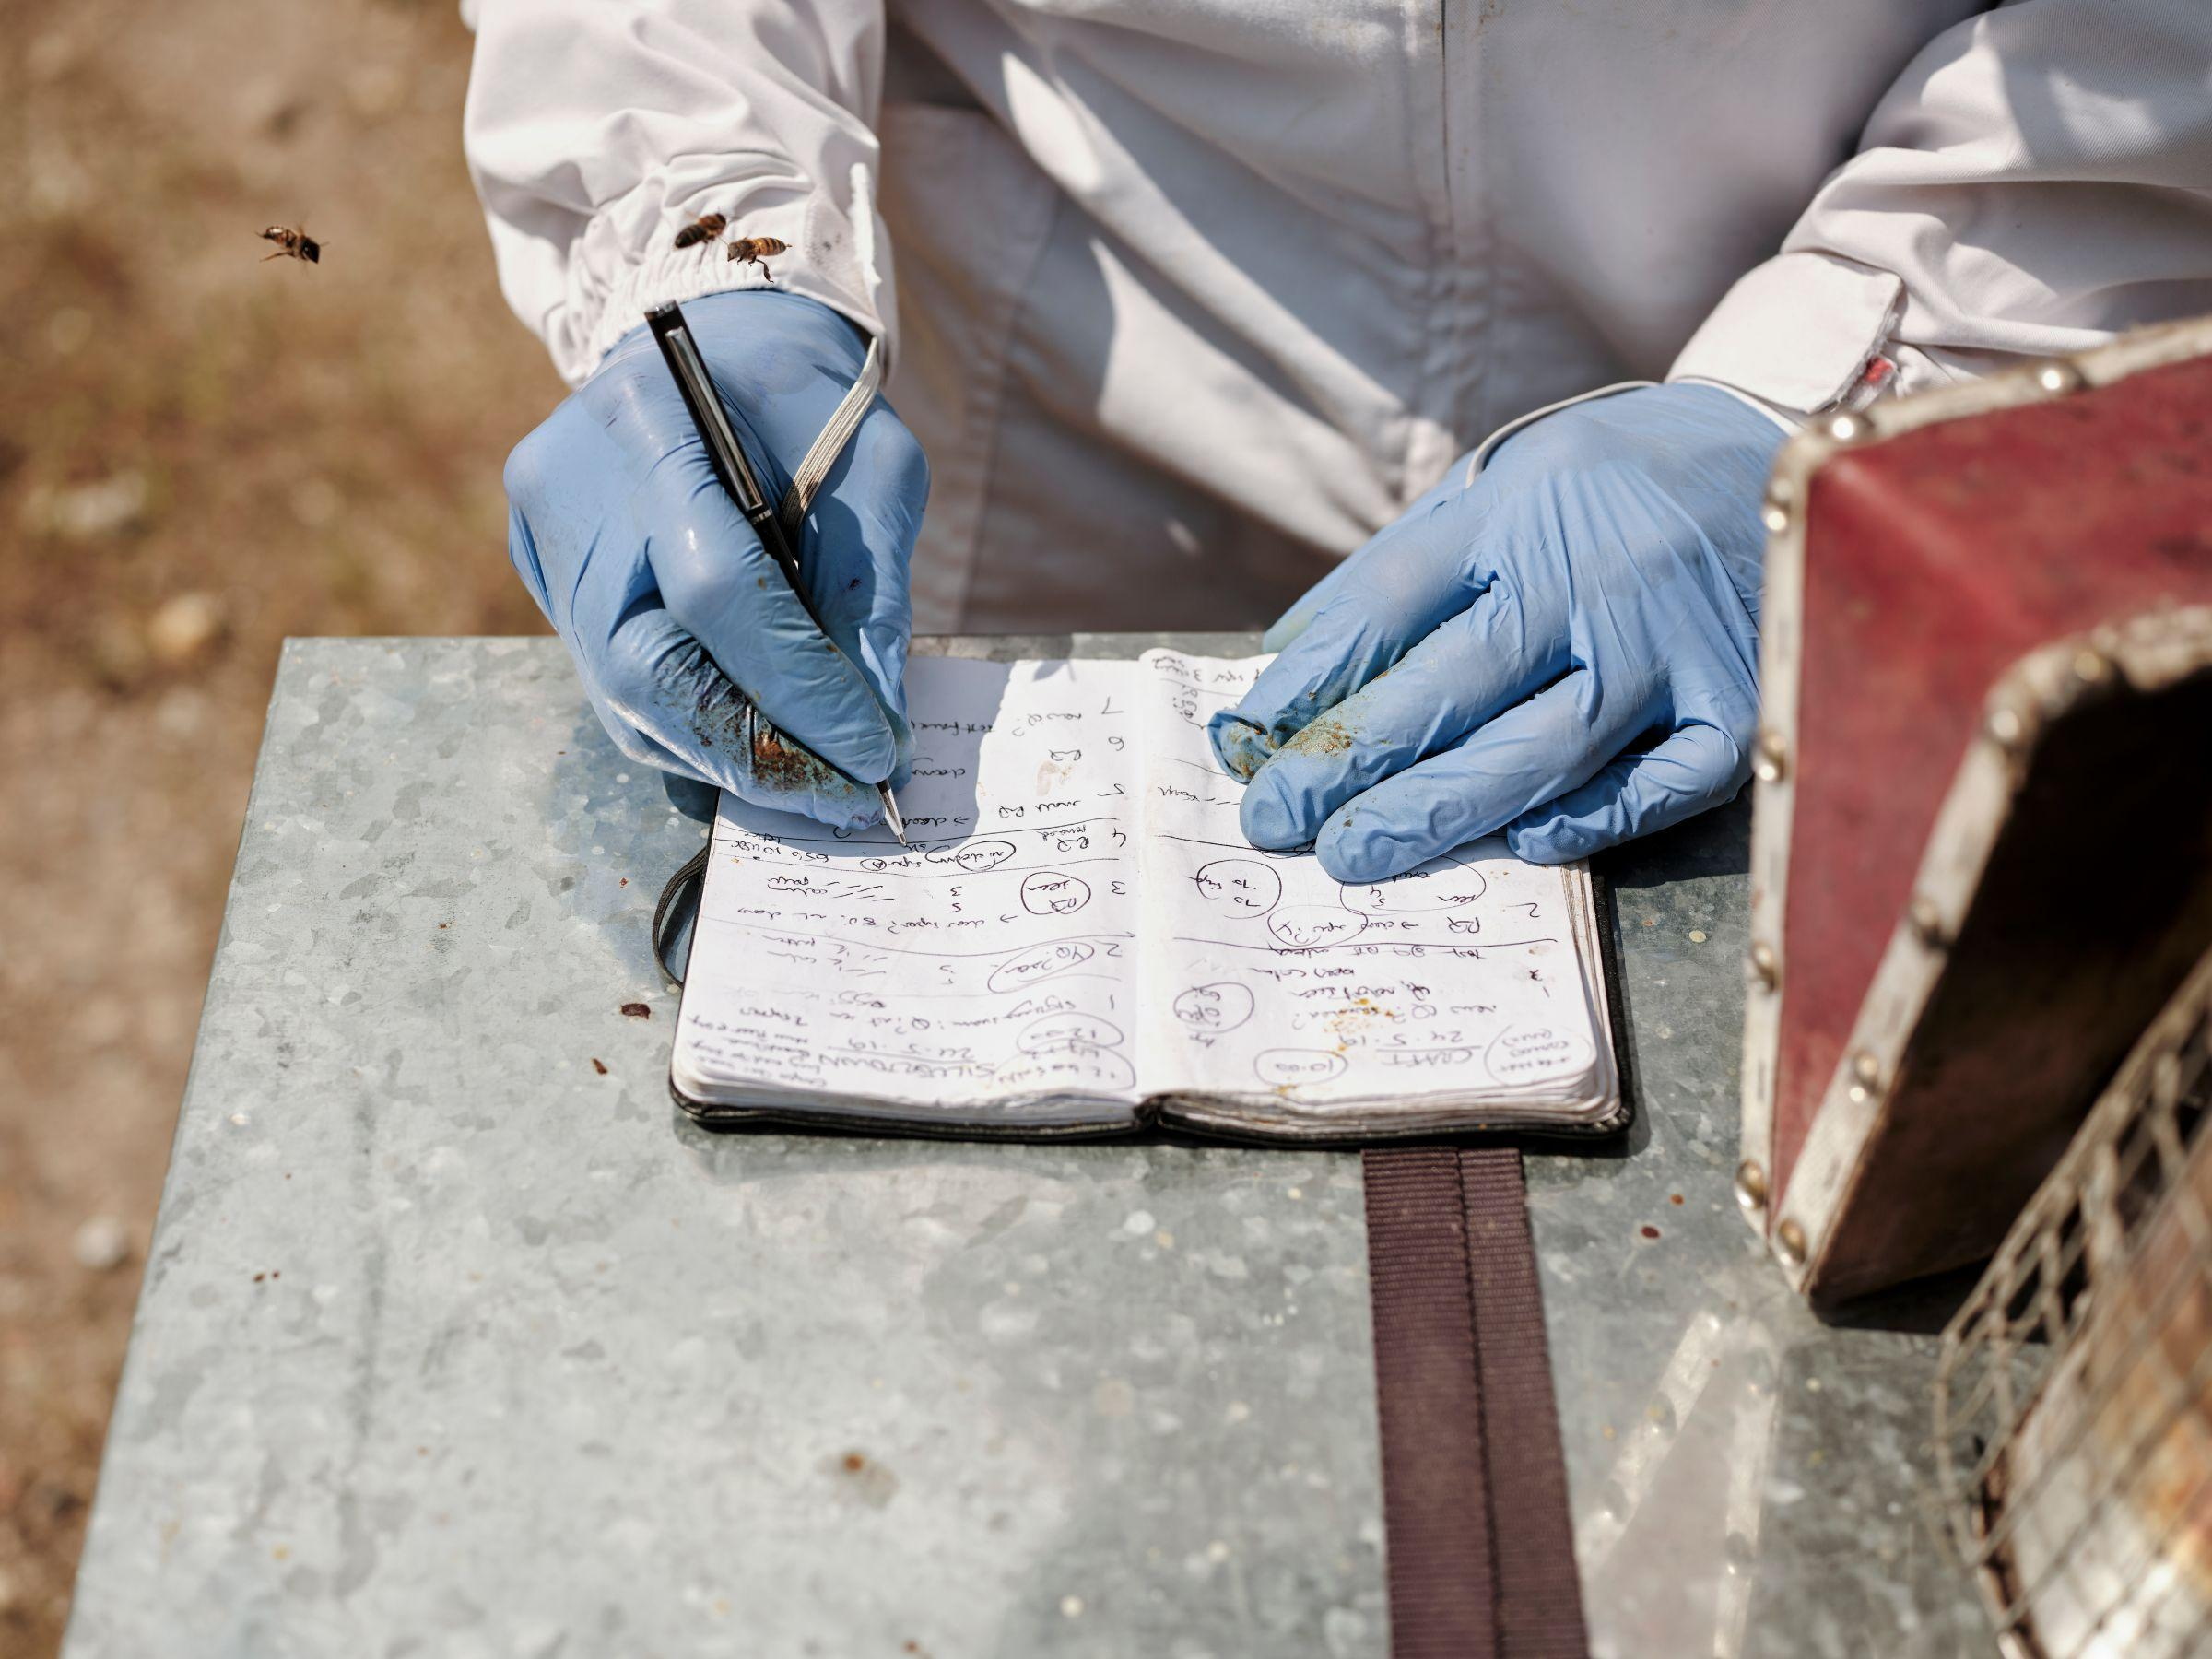 A beekeeper taking notes